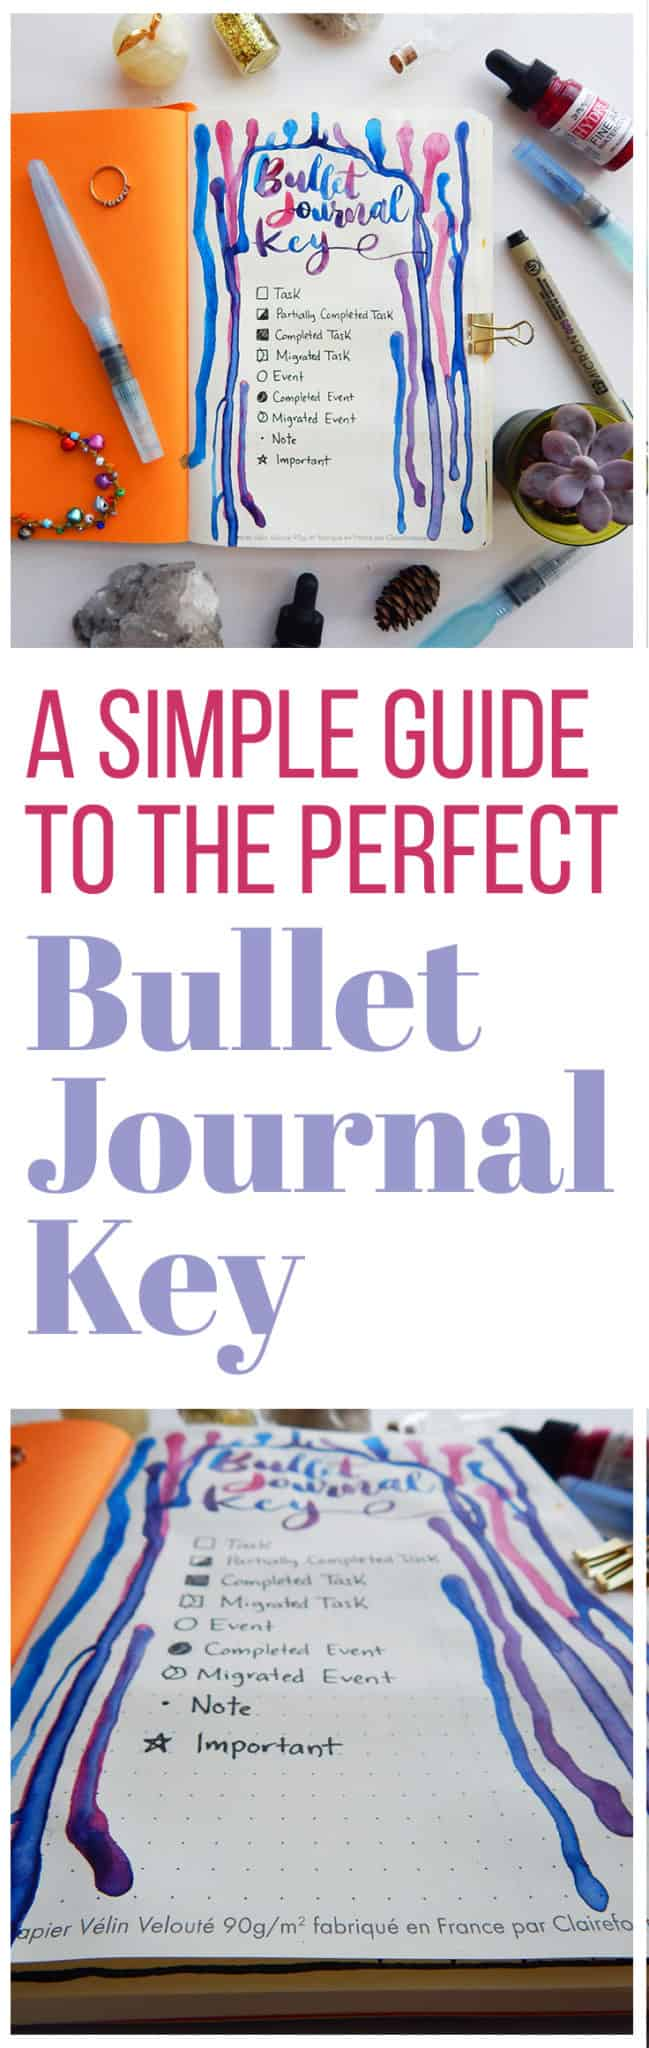 A bullet journal key is something that is super easy to do and can have many benefits. Check out how this simple bullet journal key can help increase your efficiency and help you gain confidence in your bullet journal!